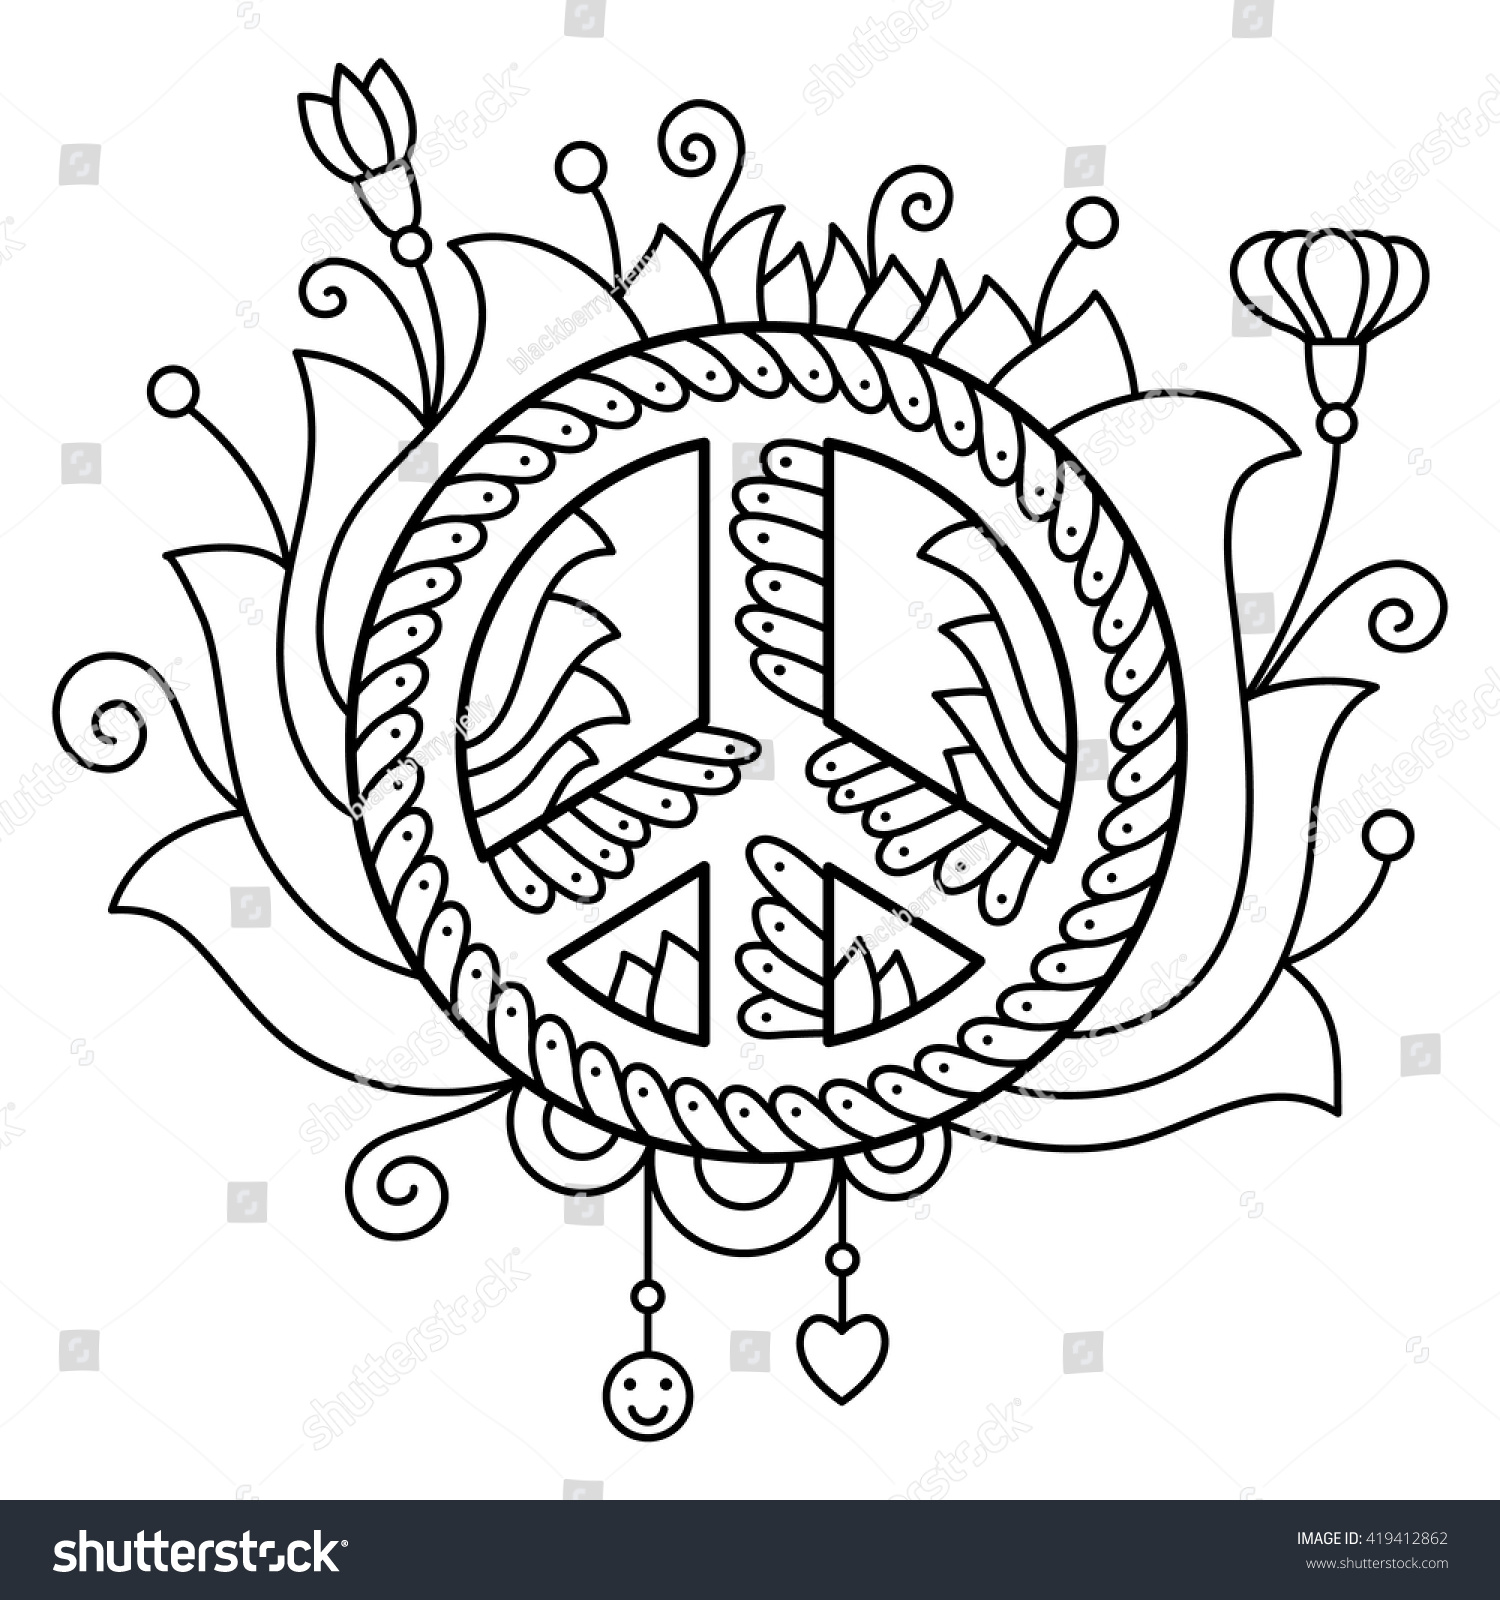 peace symbol coloring page vector stock vector 419412862